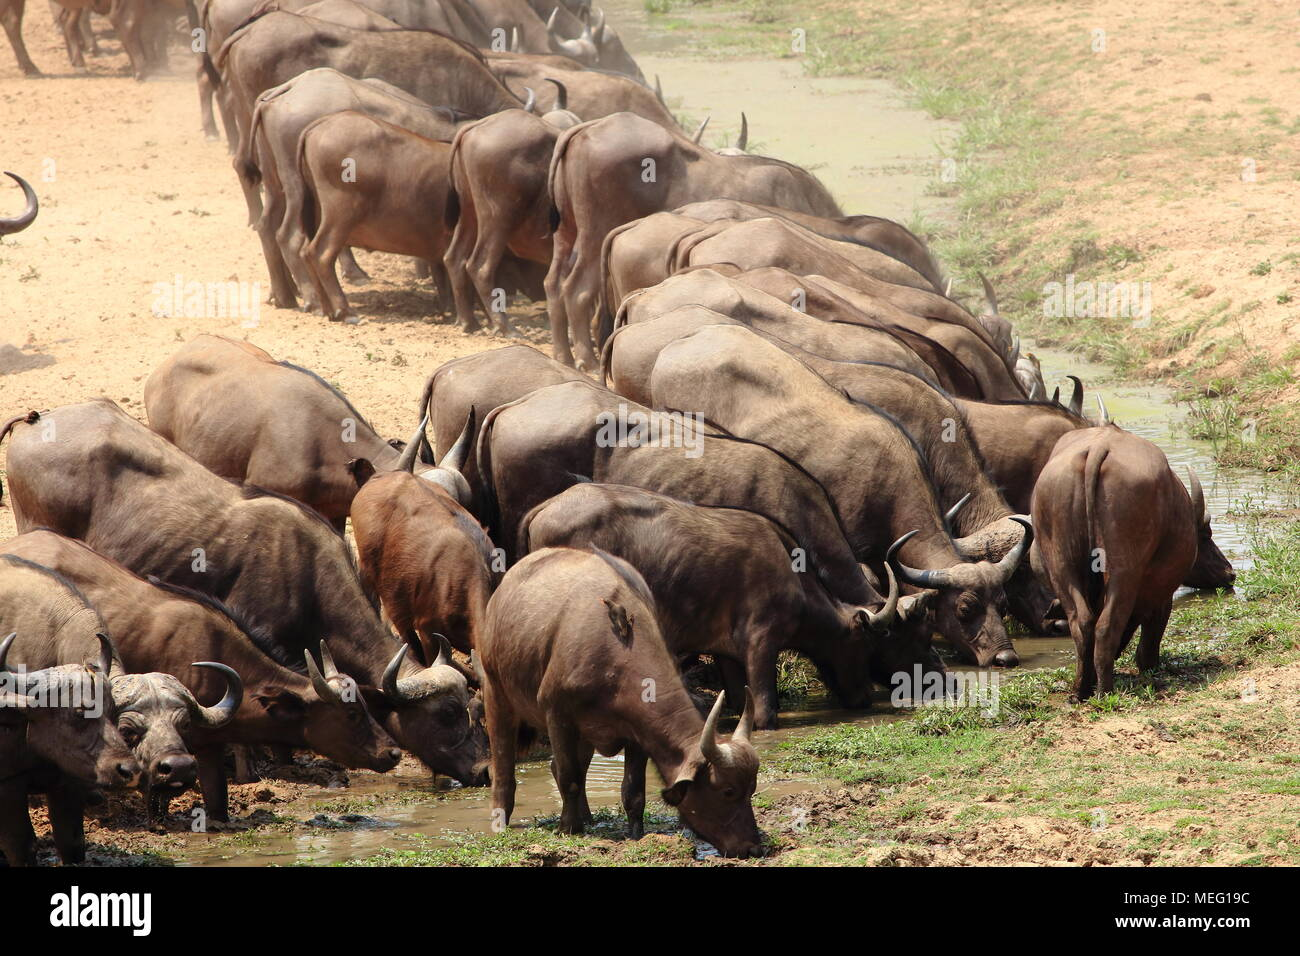 Buffalo herd in South Luangwa, Zambia - Stock Image